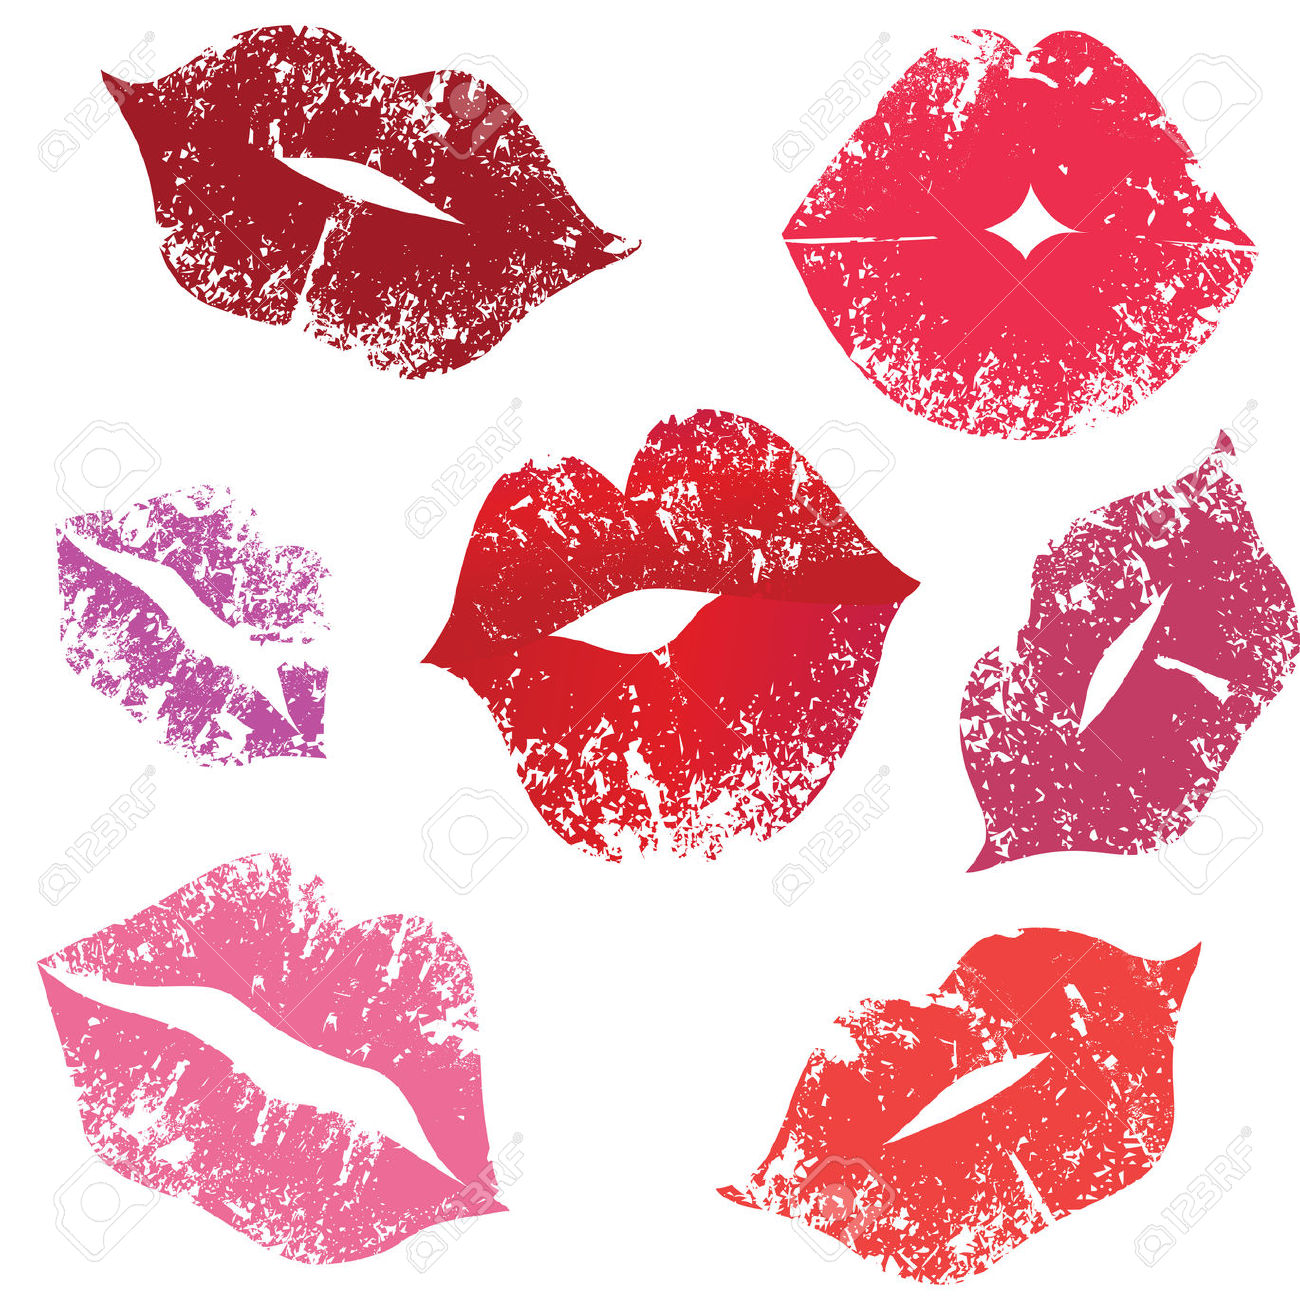 Kisses clipart mouth Clipart Clip Art Free Collection